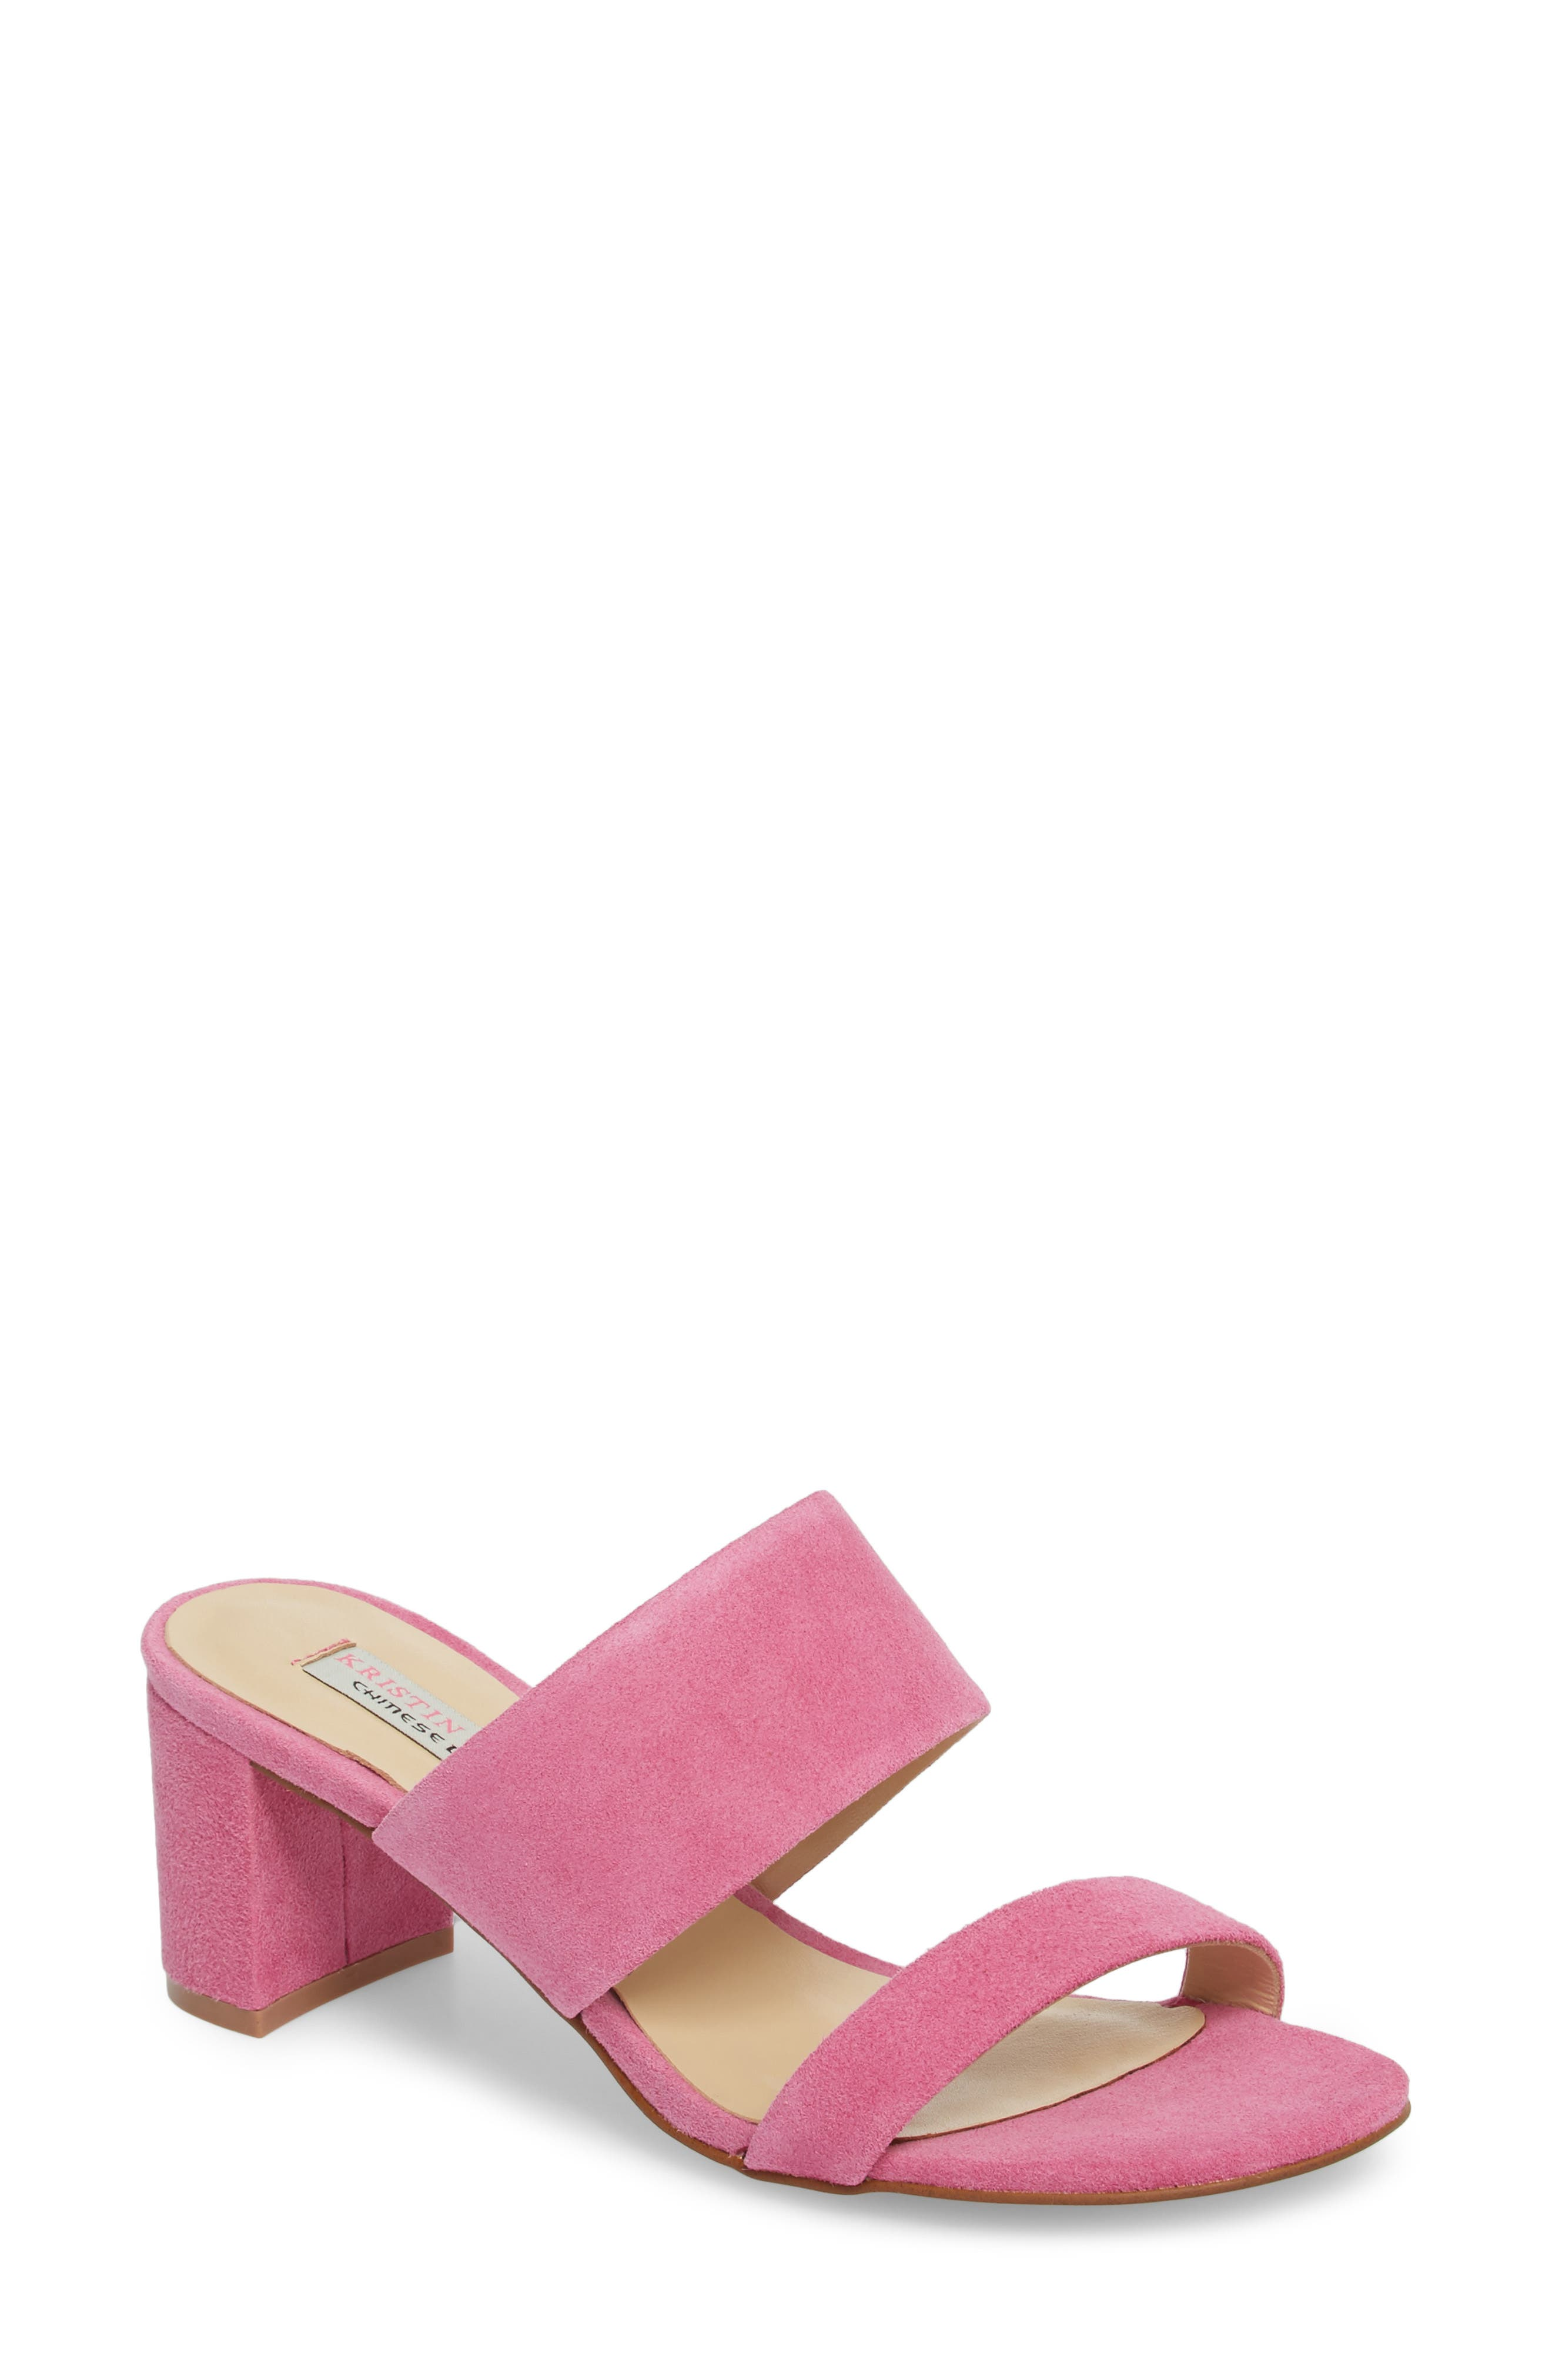 Lakeview Sandal,                             Main thumbnail 1, color,                             Fuchsia Suede